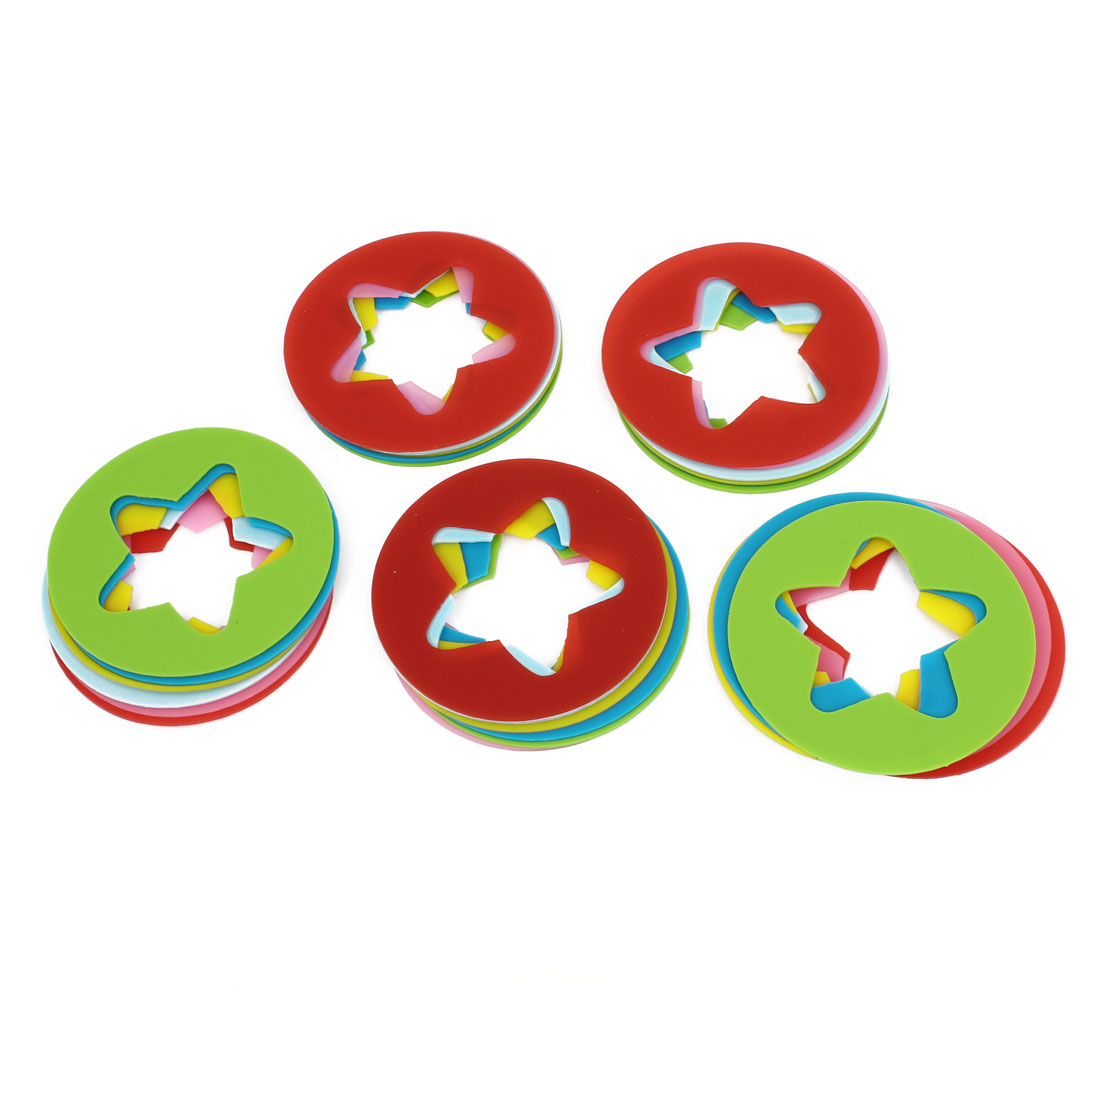 Assorted Color Silicone Round Star Identify Cup Wine Glasses Drink Markers 30pcs